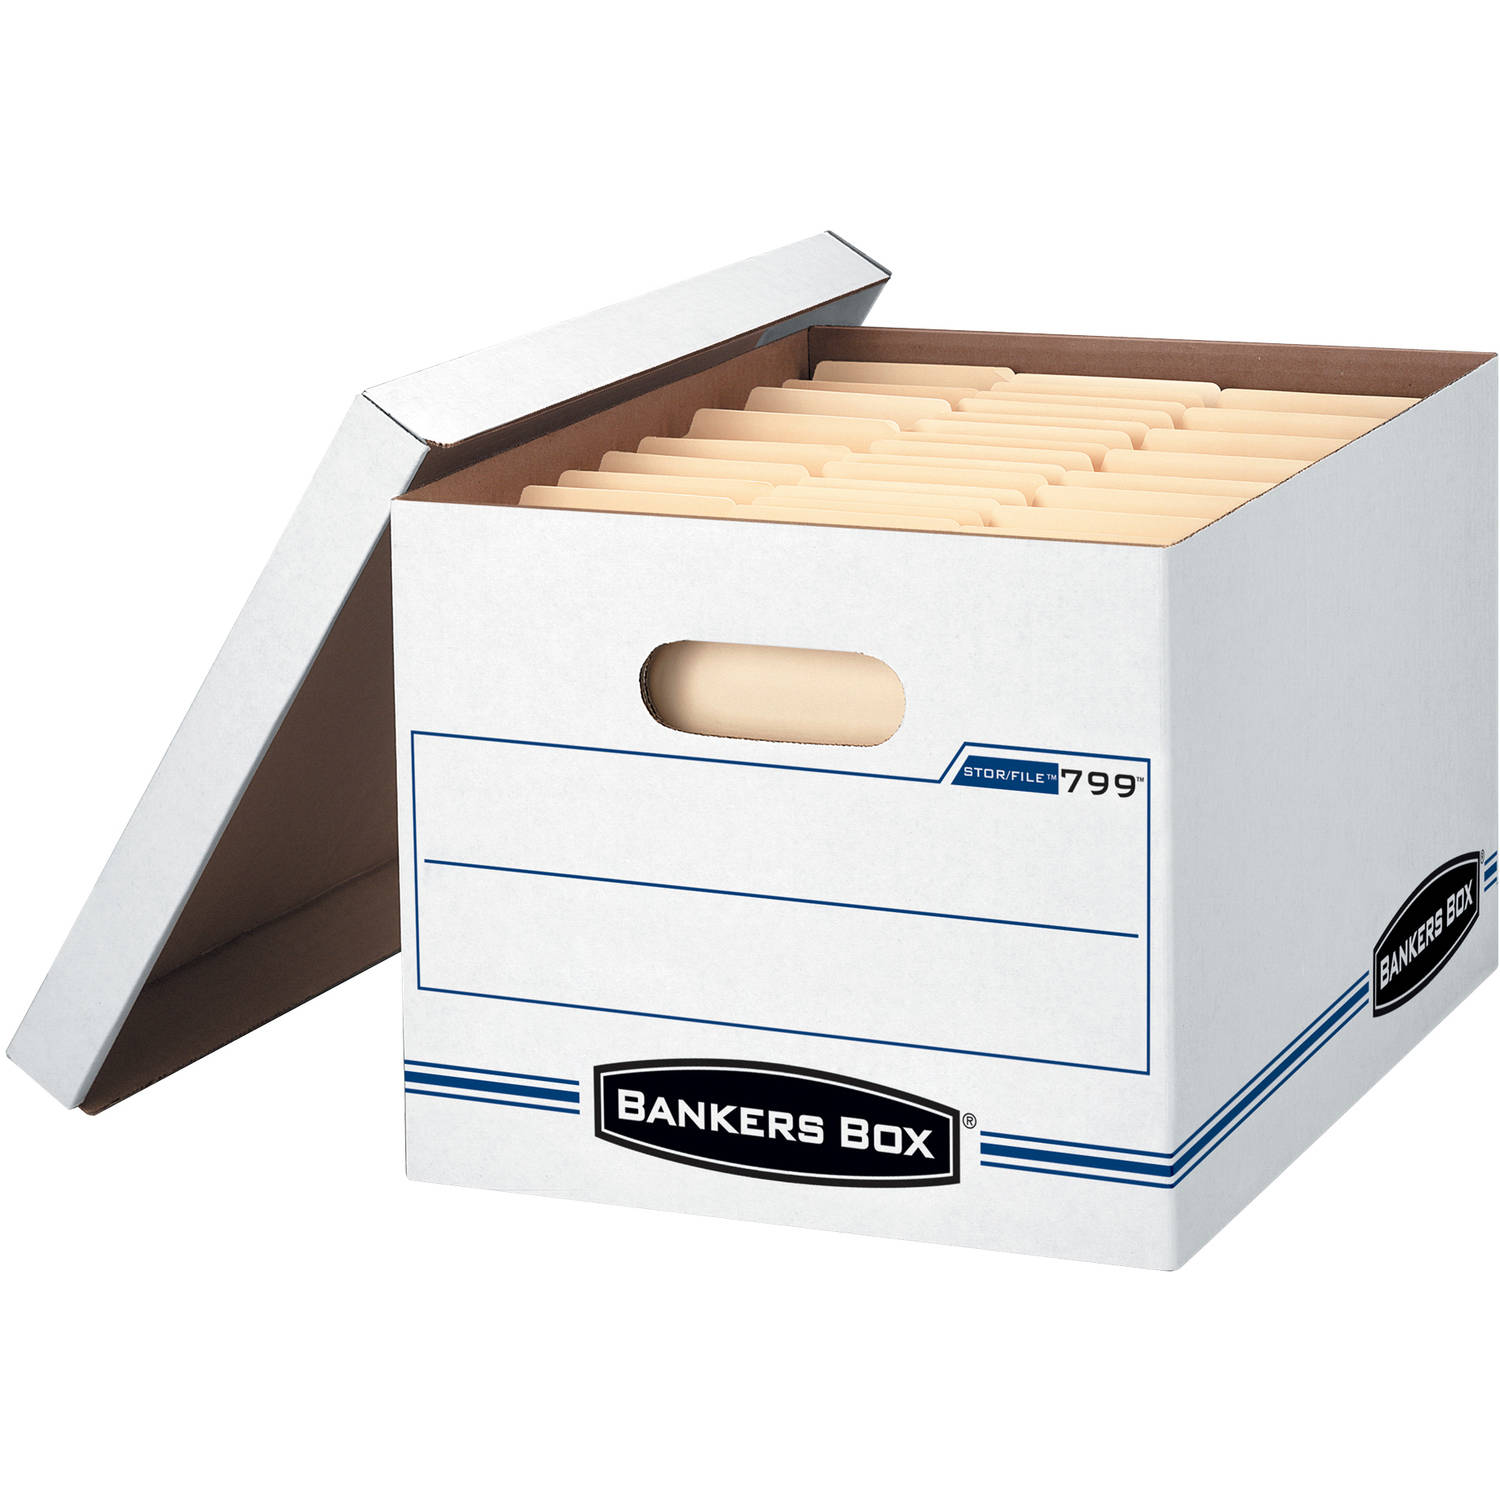 Bankers Box Stor File Storage With Lift Off Lid Letter Legal 12 X 10 15 White 10pk